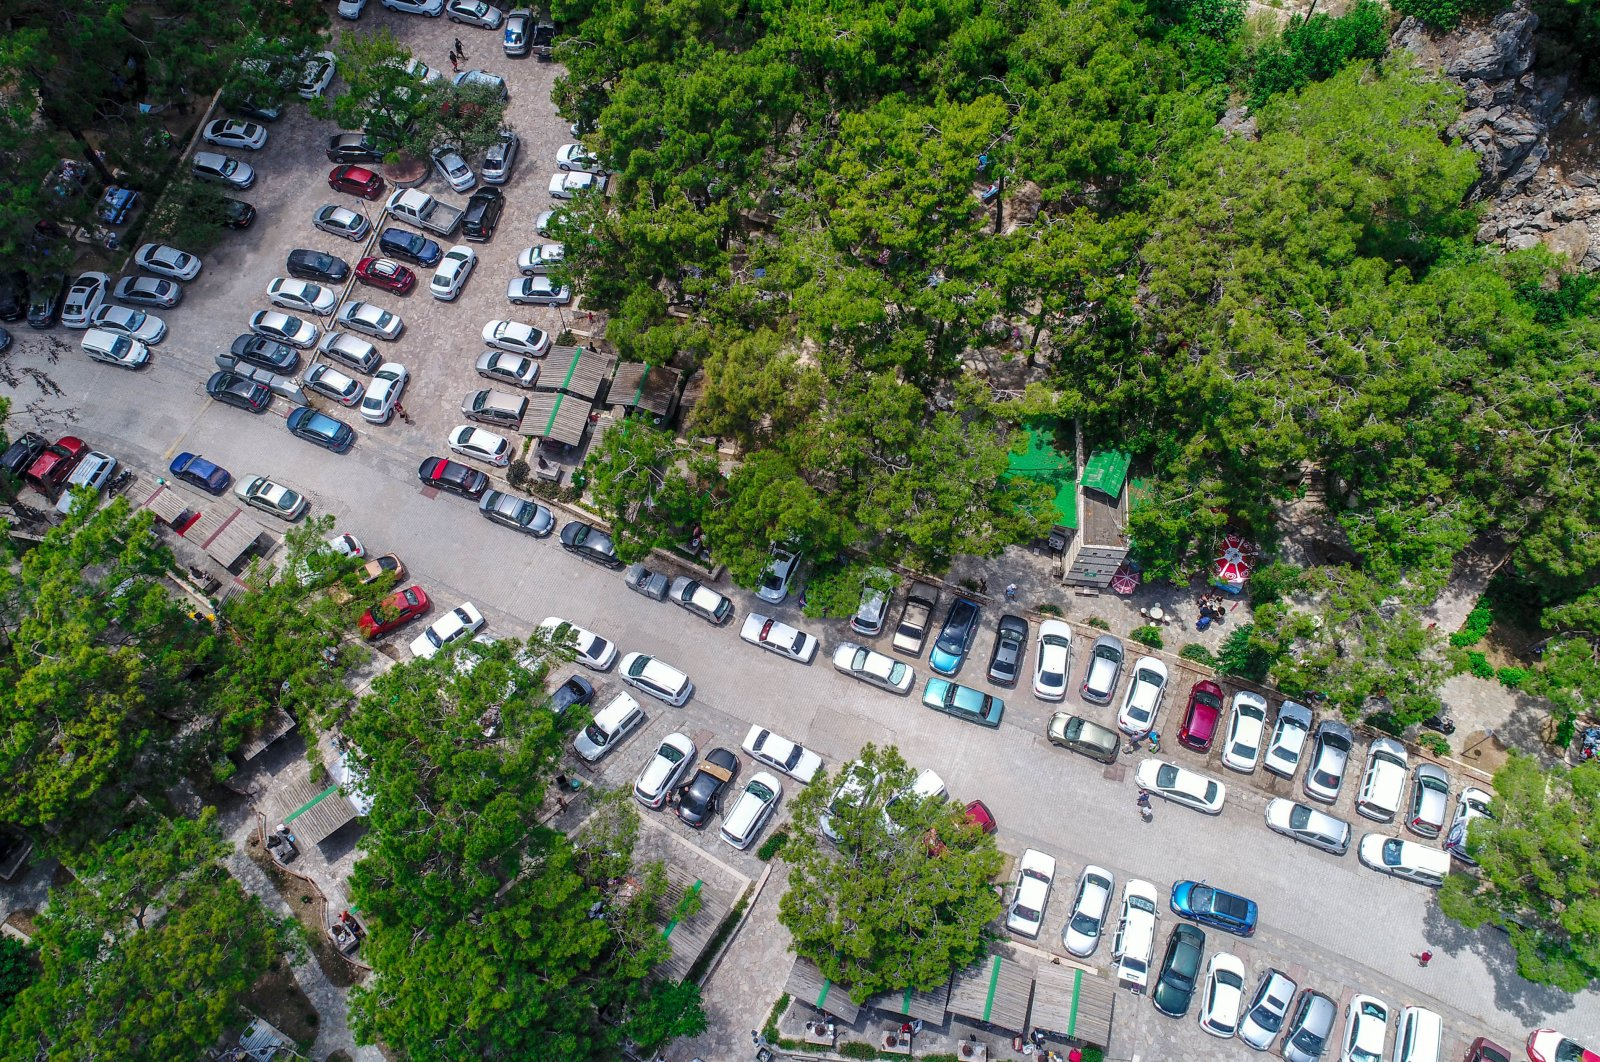 Passenger cars are seen parked at a picnic area in southern Antalya province, Turkey, June 22, 2020. (DHA Photo)